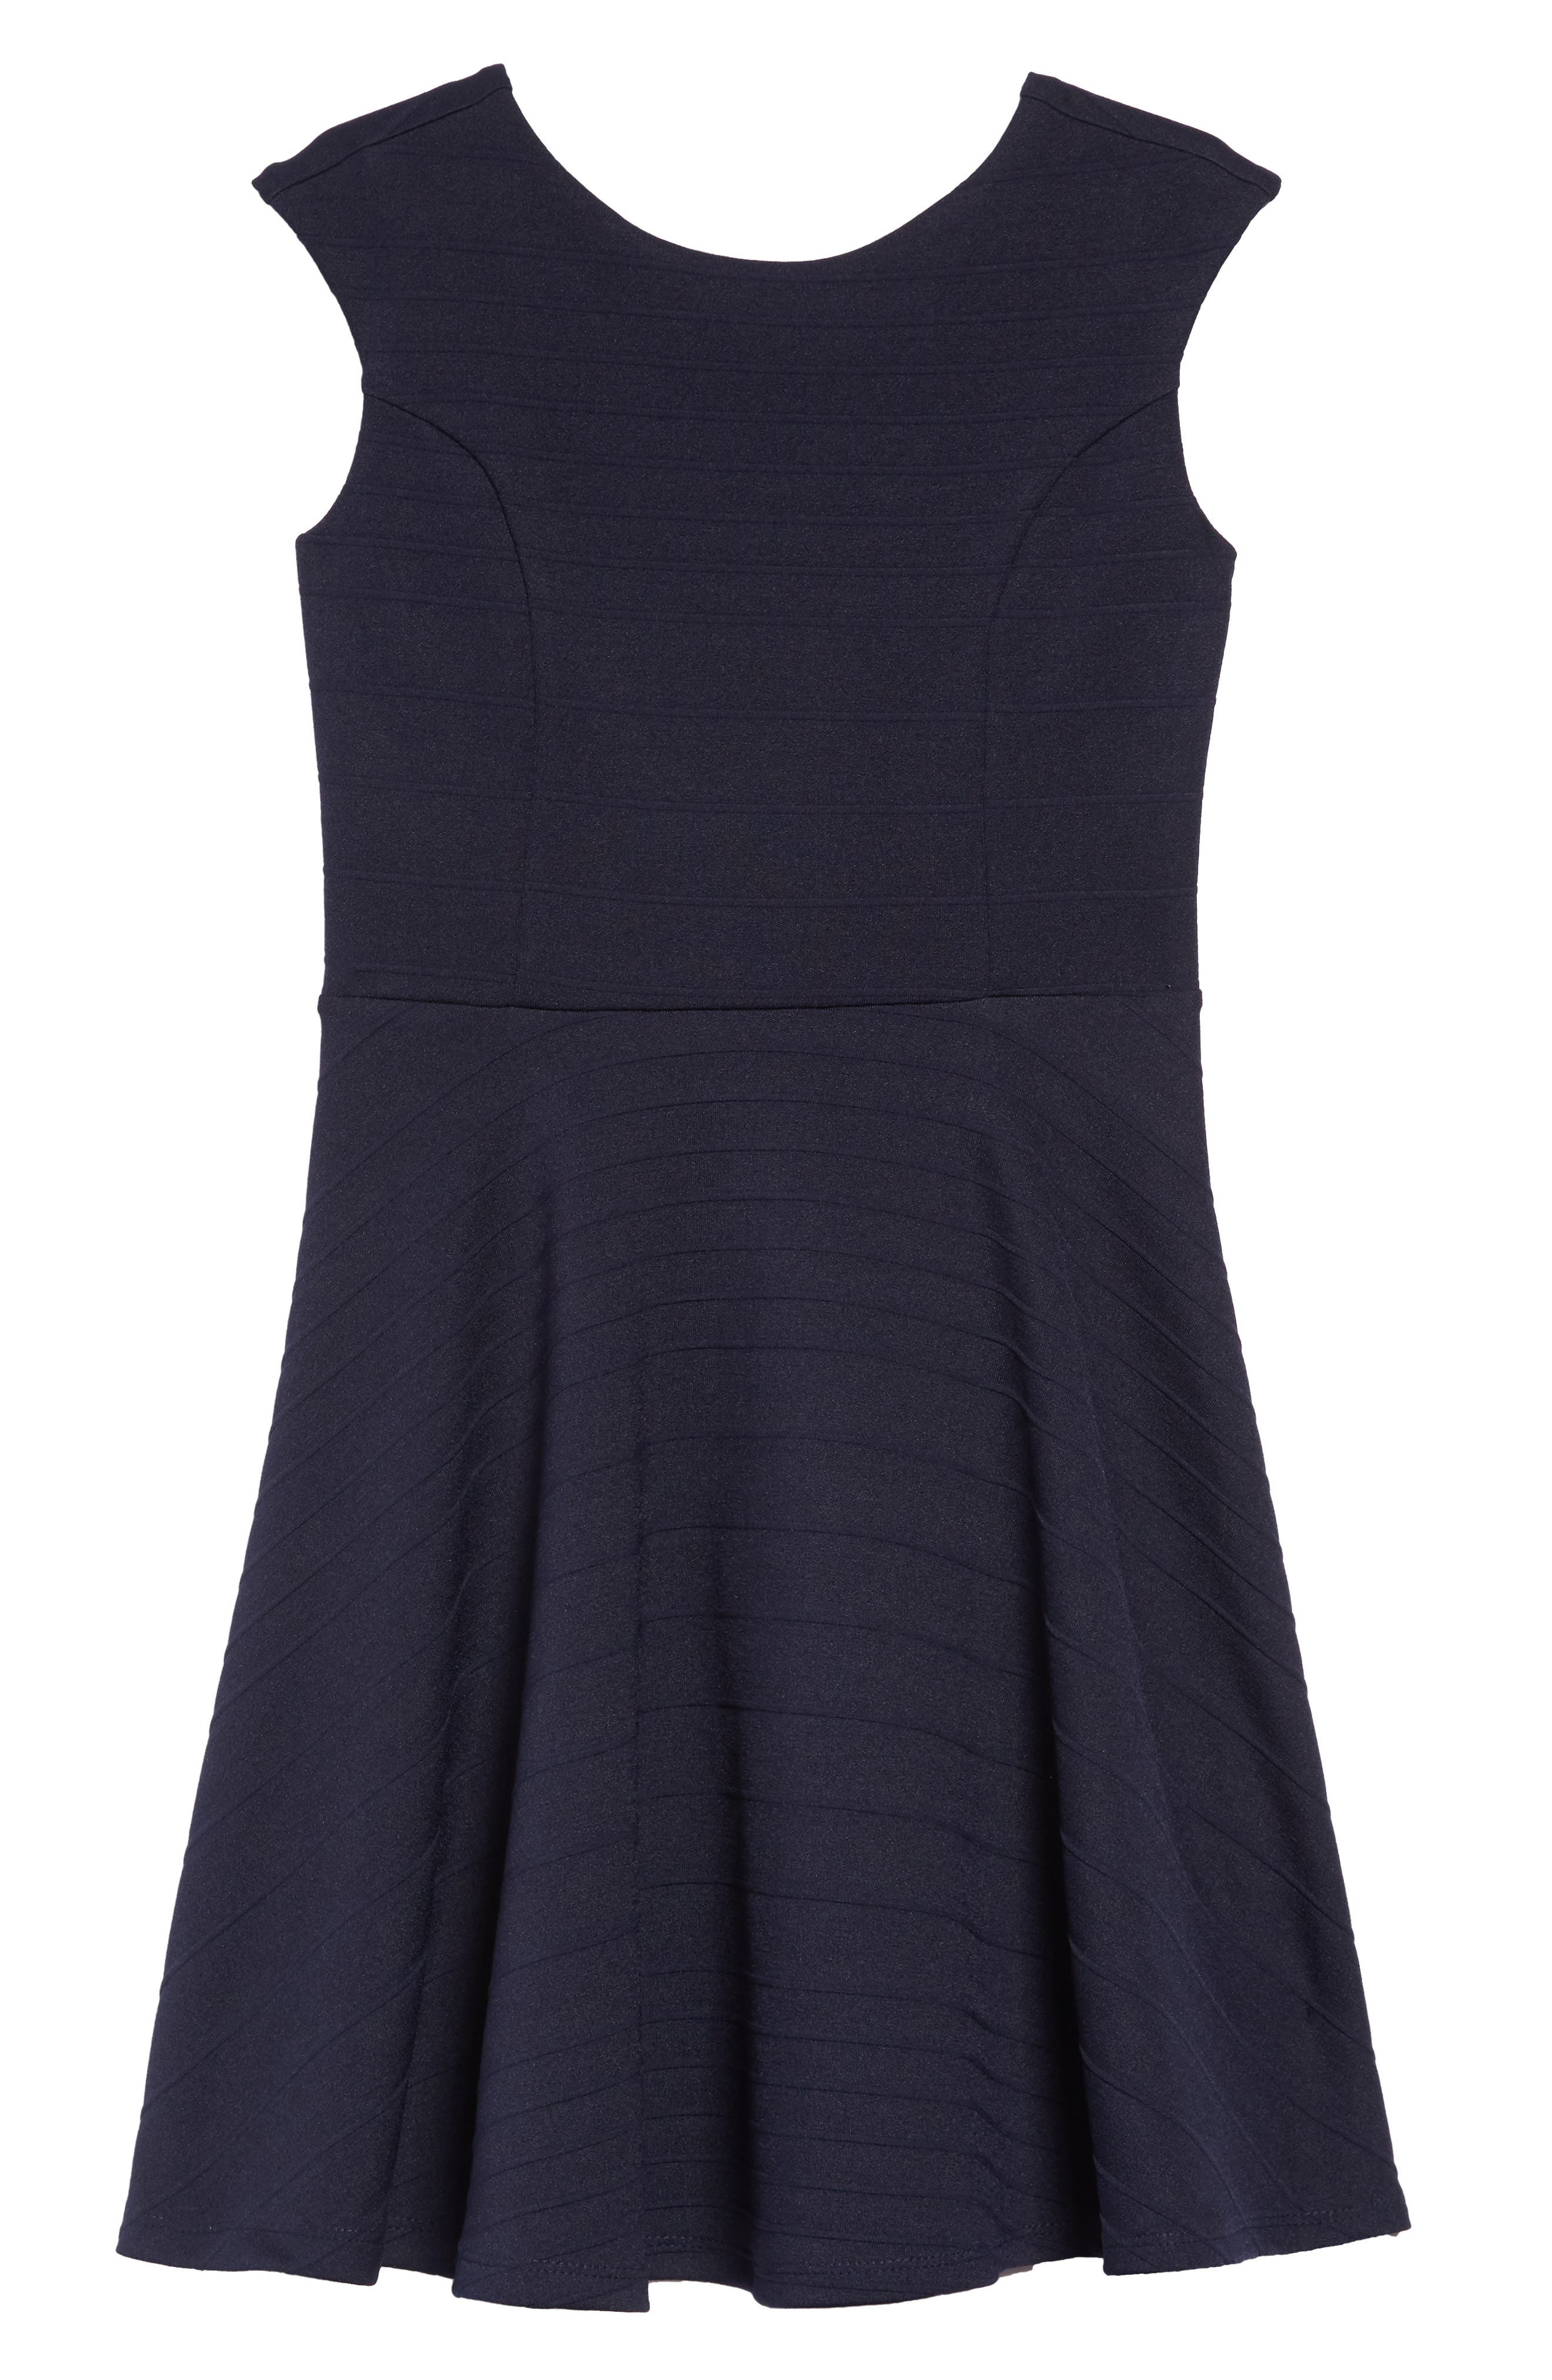 UN DEUX TROIS Stripe Fit & Flare Dress, Main, color, NAVY